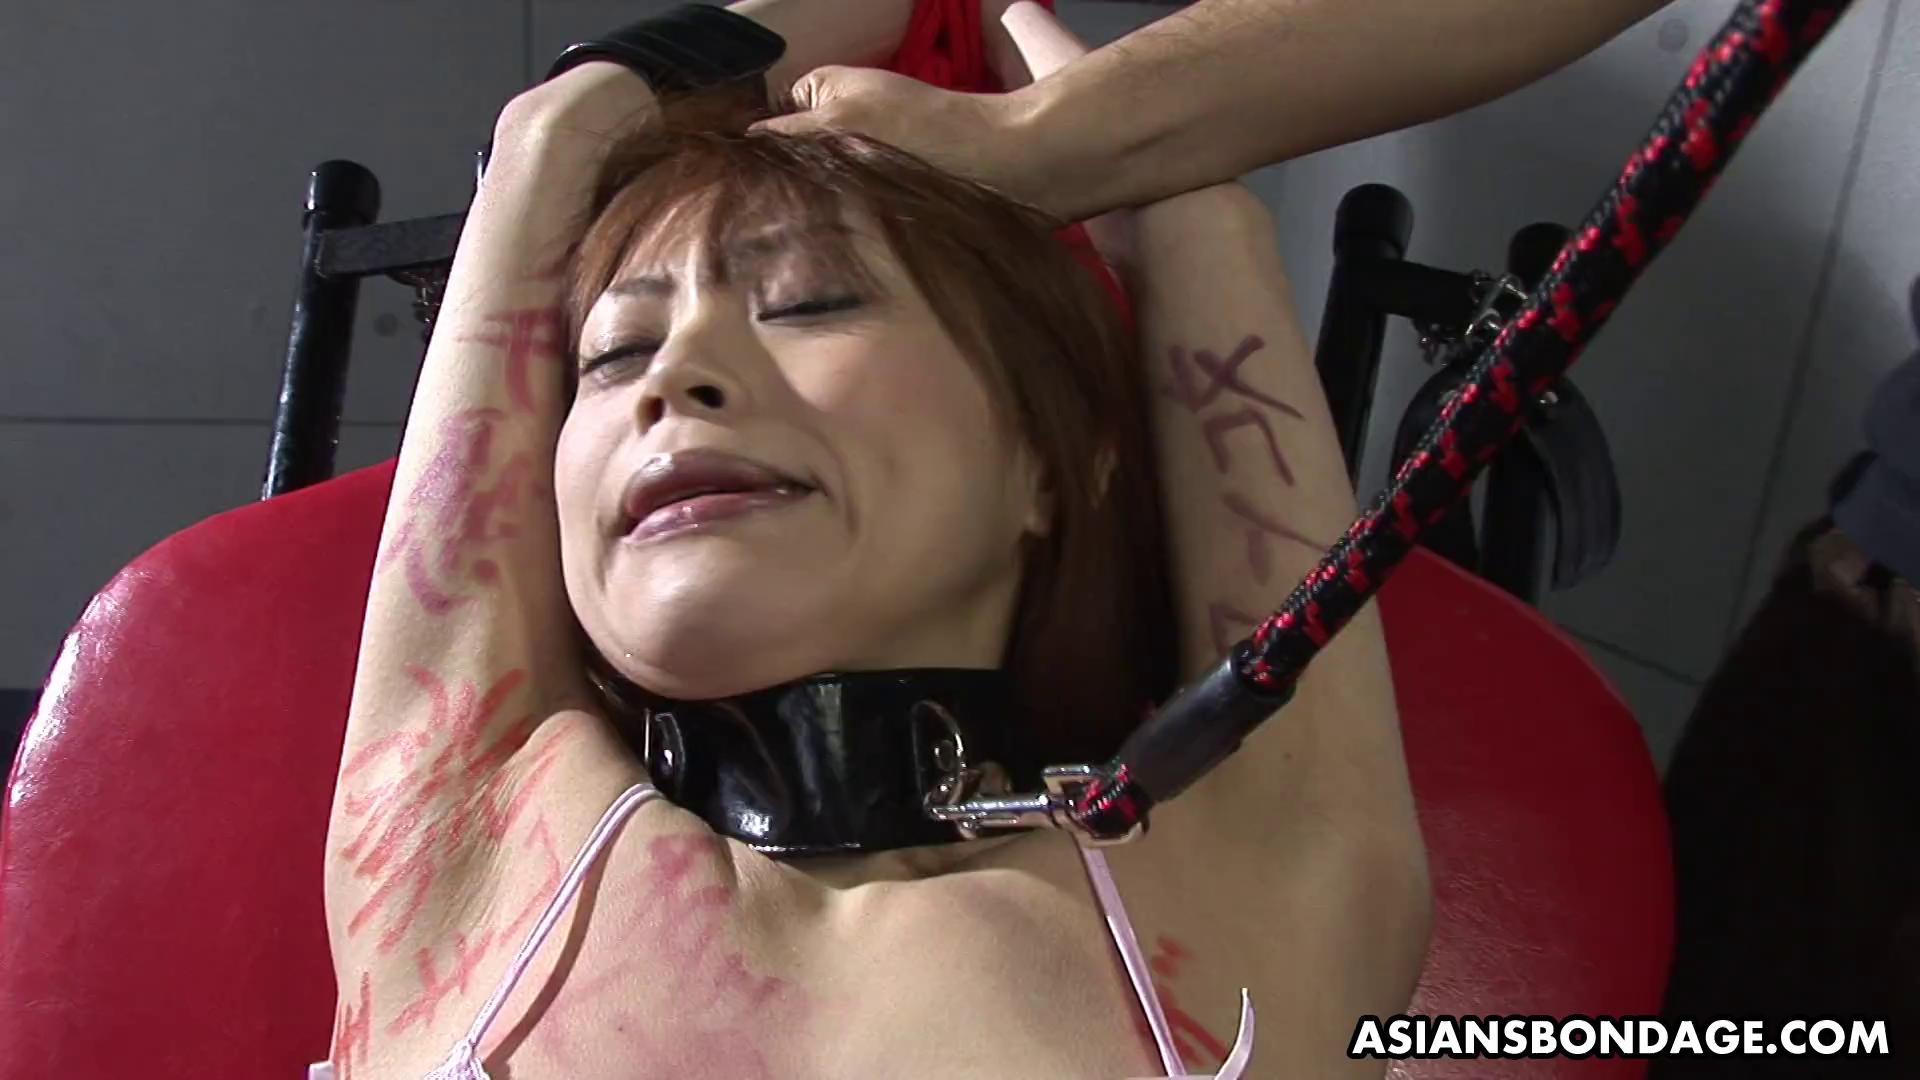 Pain Hardcore Porn Pics innocent asian gets in so much hardcore bdsm pain and loves